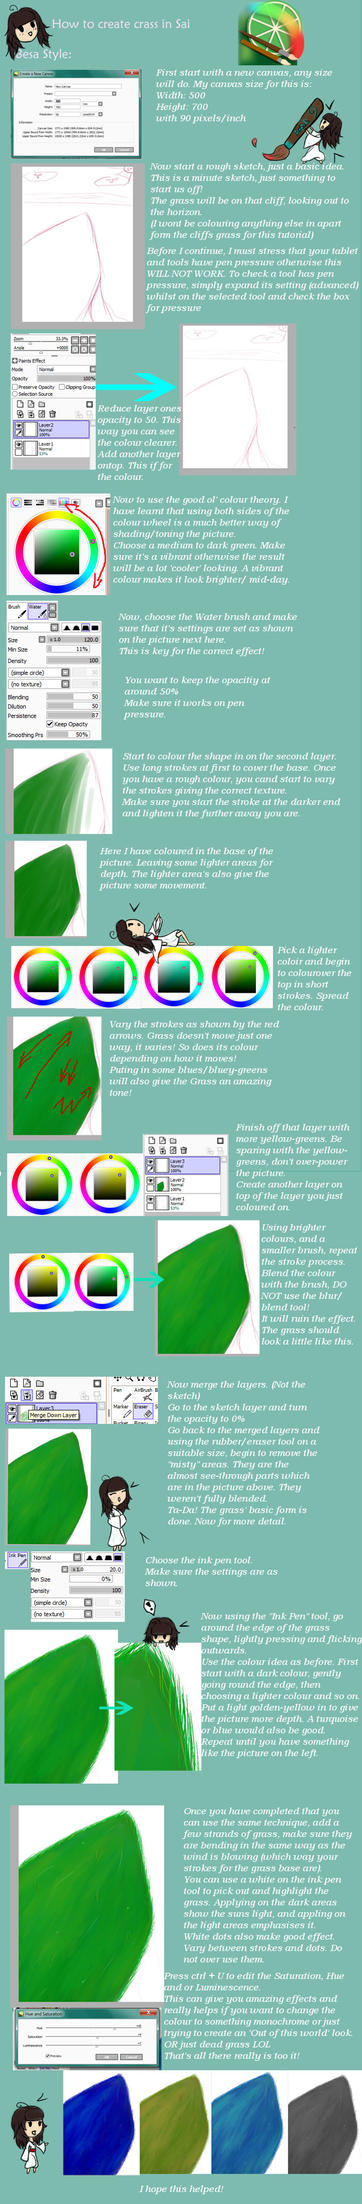 paint tool sai grass tutorial by besachan on deviantart. Black Bedroom Furniture Sets. Home Design Ideas